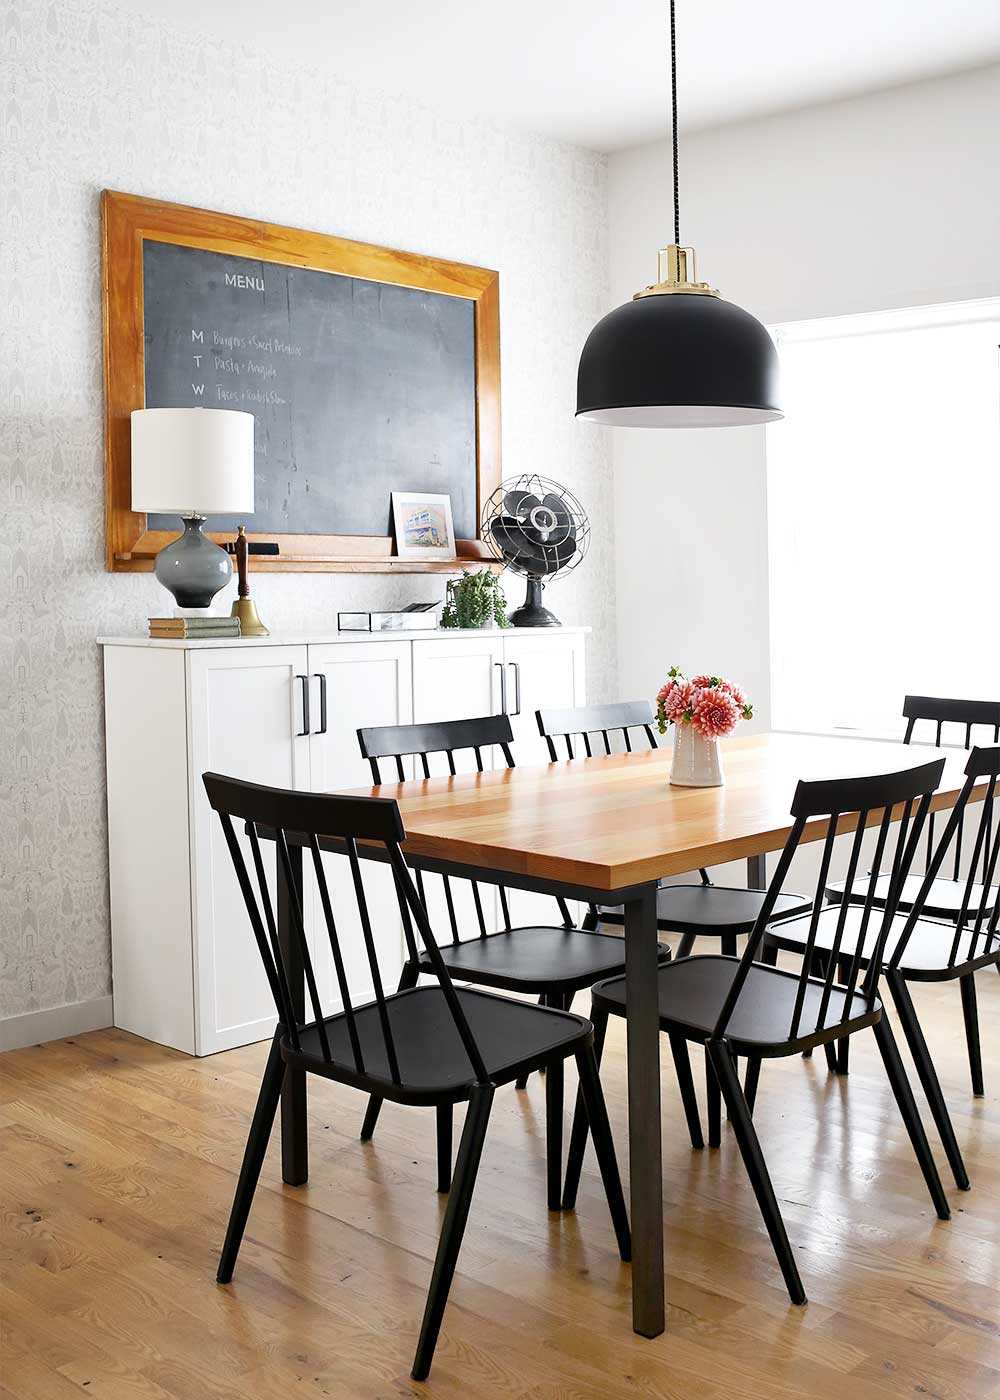 Modern Farmhouse Dining Room with Ikea Fauxdenza from The Fauxmartha